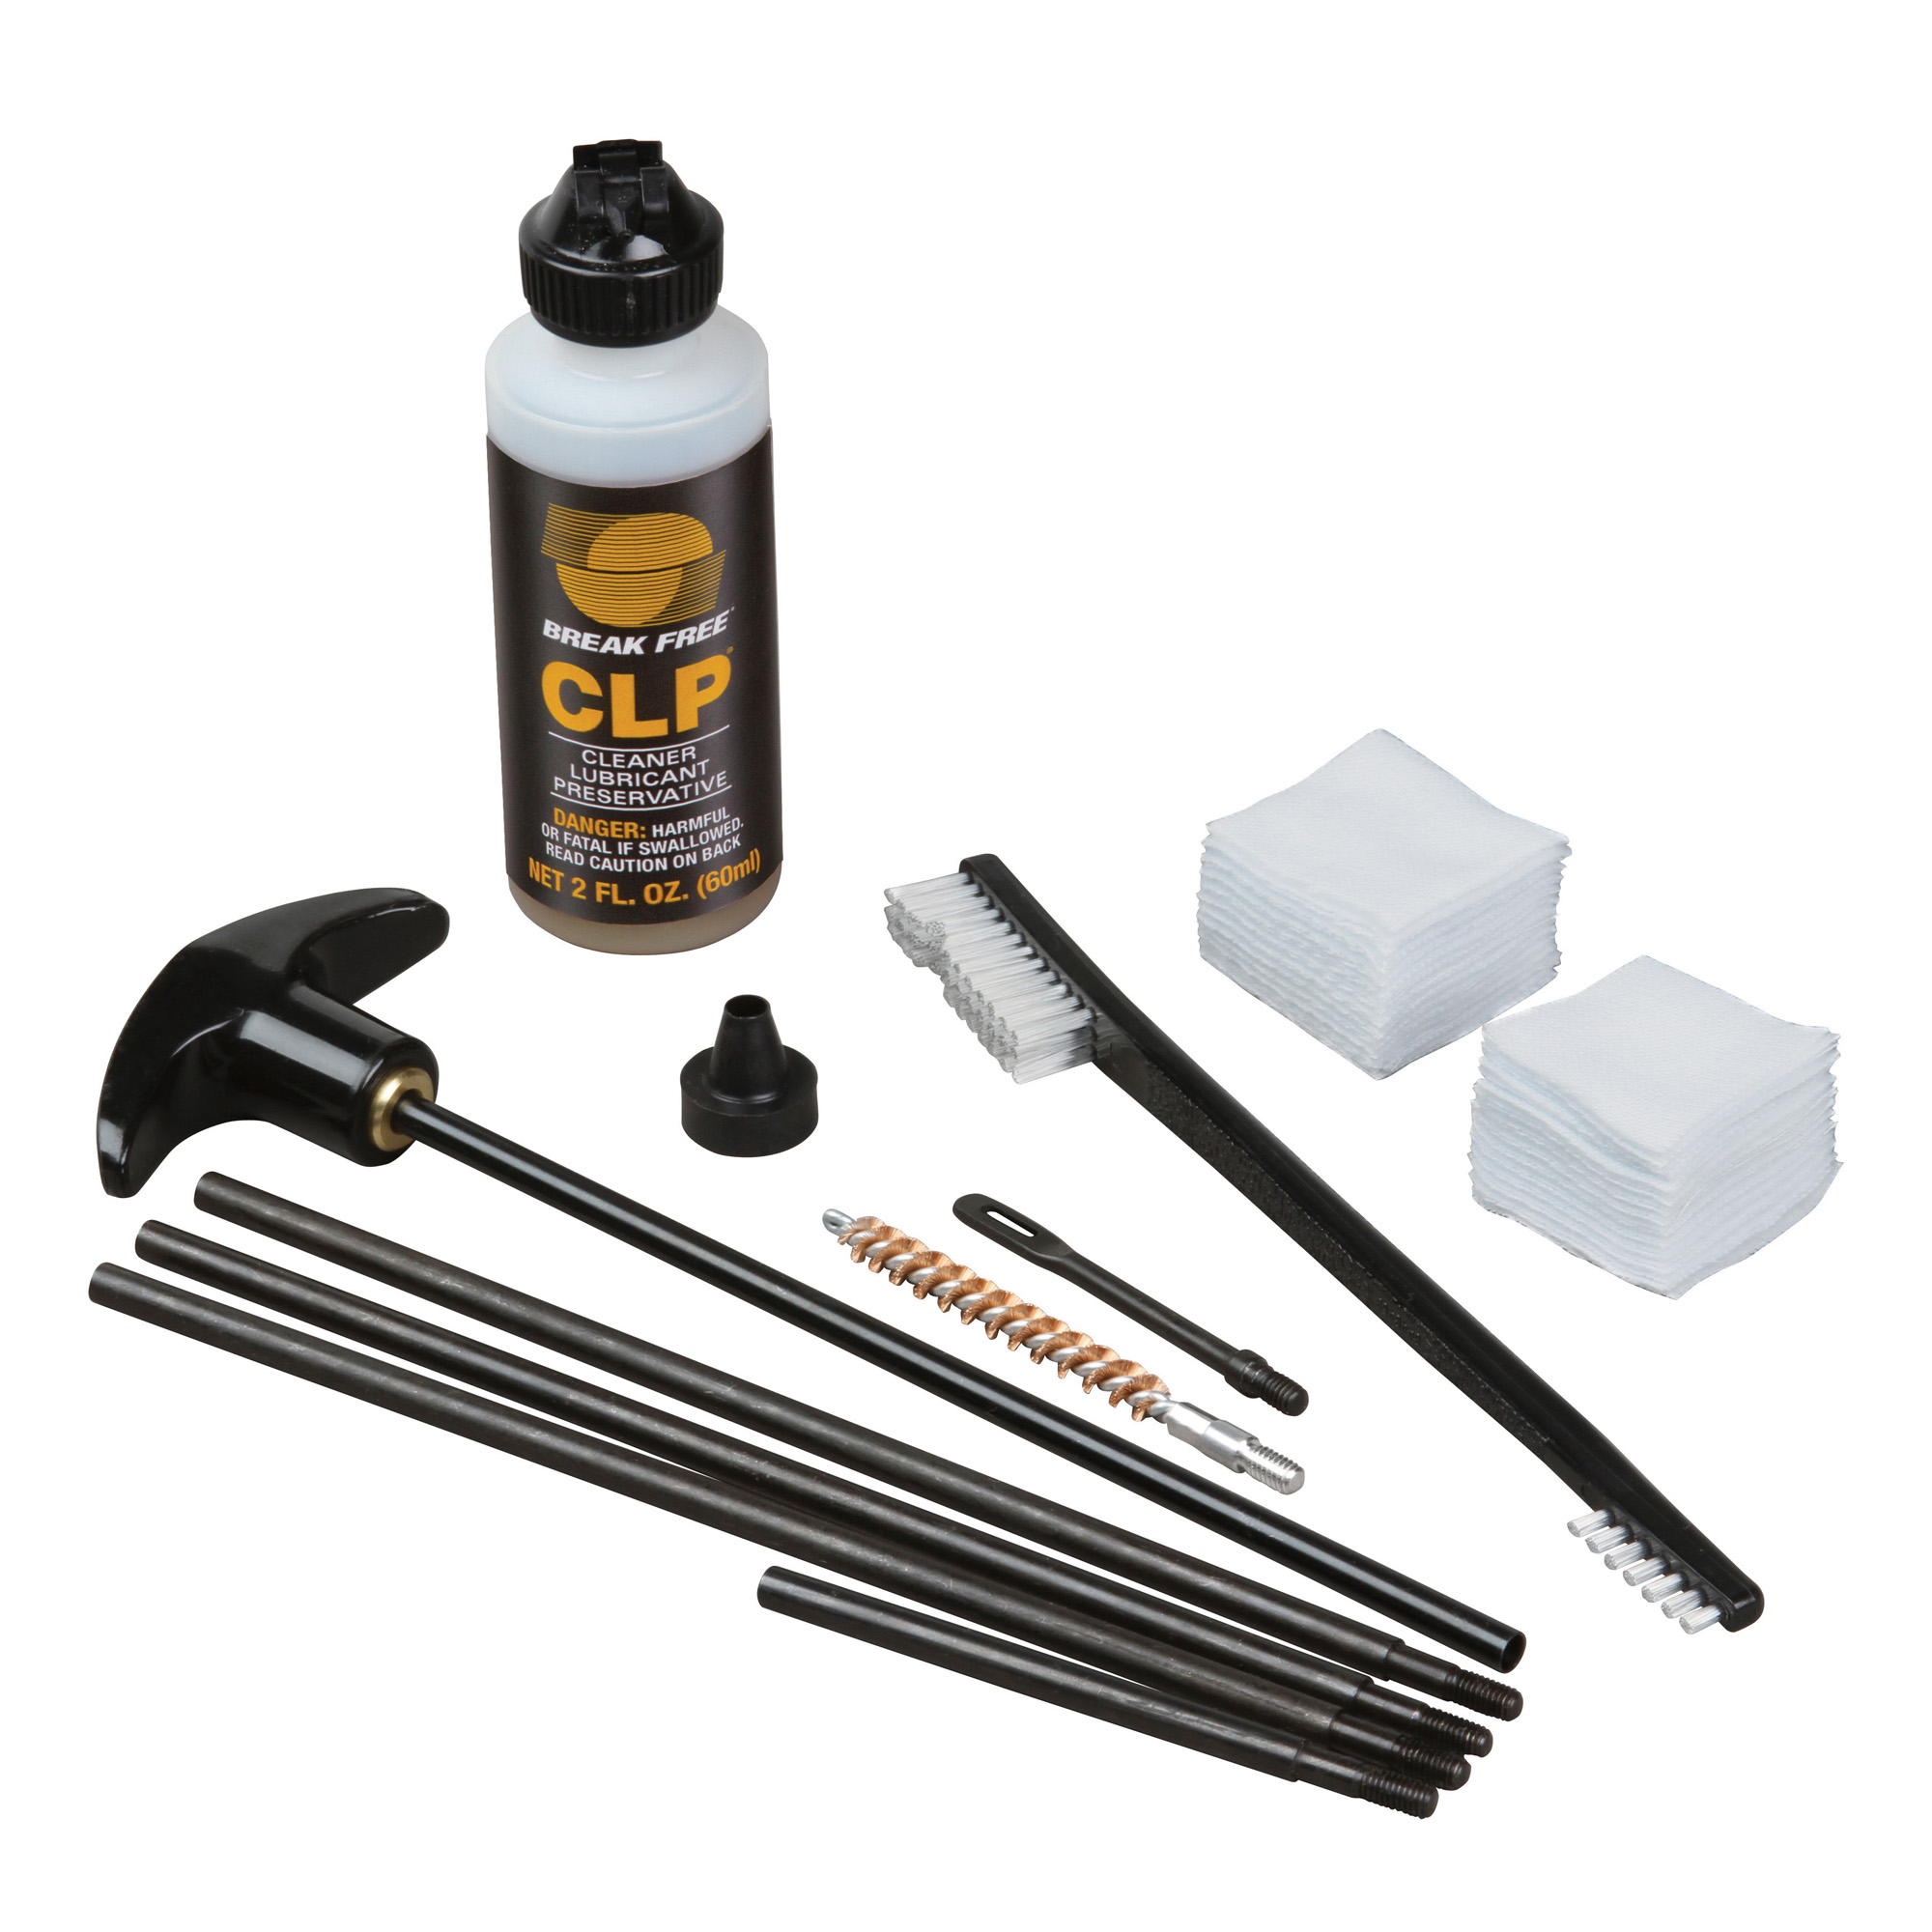 Kleen-Bore Kleen Br Rfl 243/25/6.5mm Cln Kit